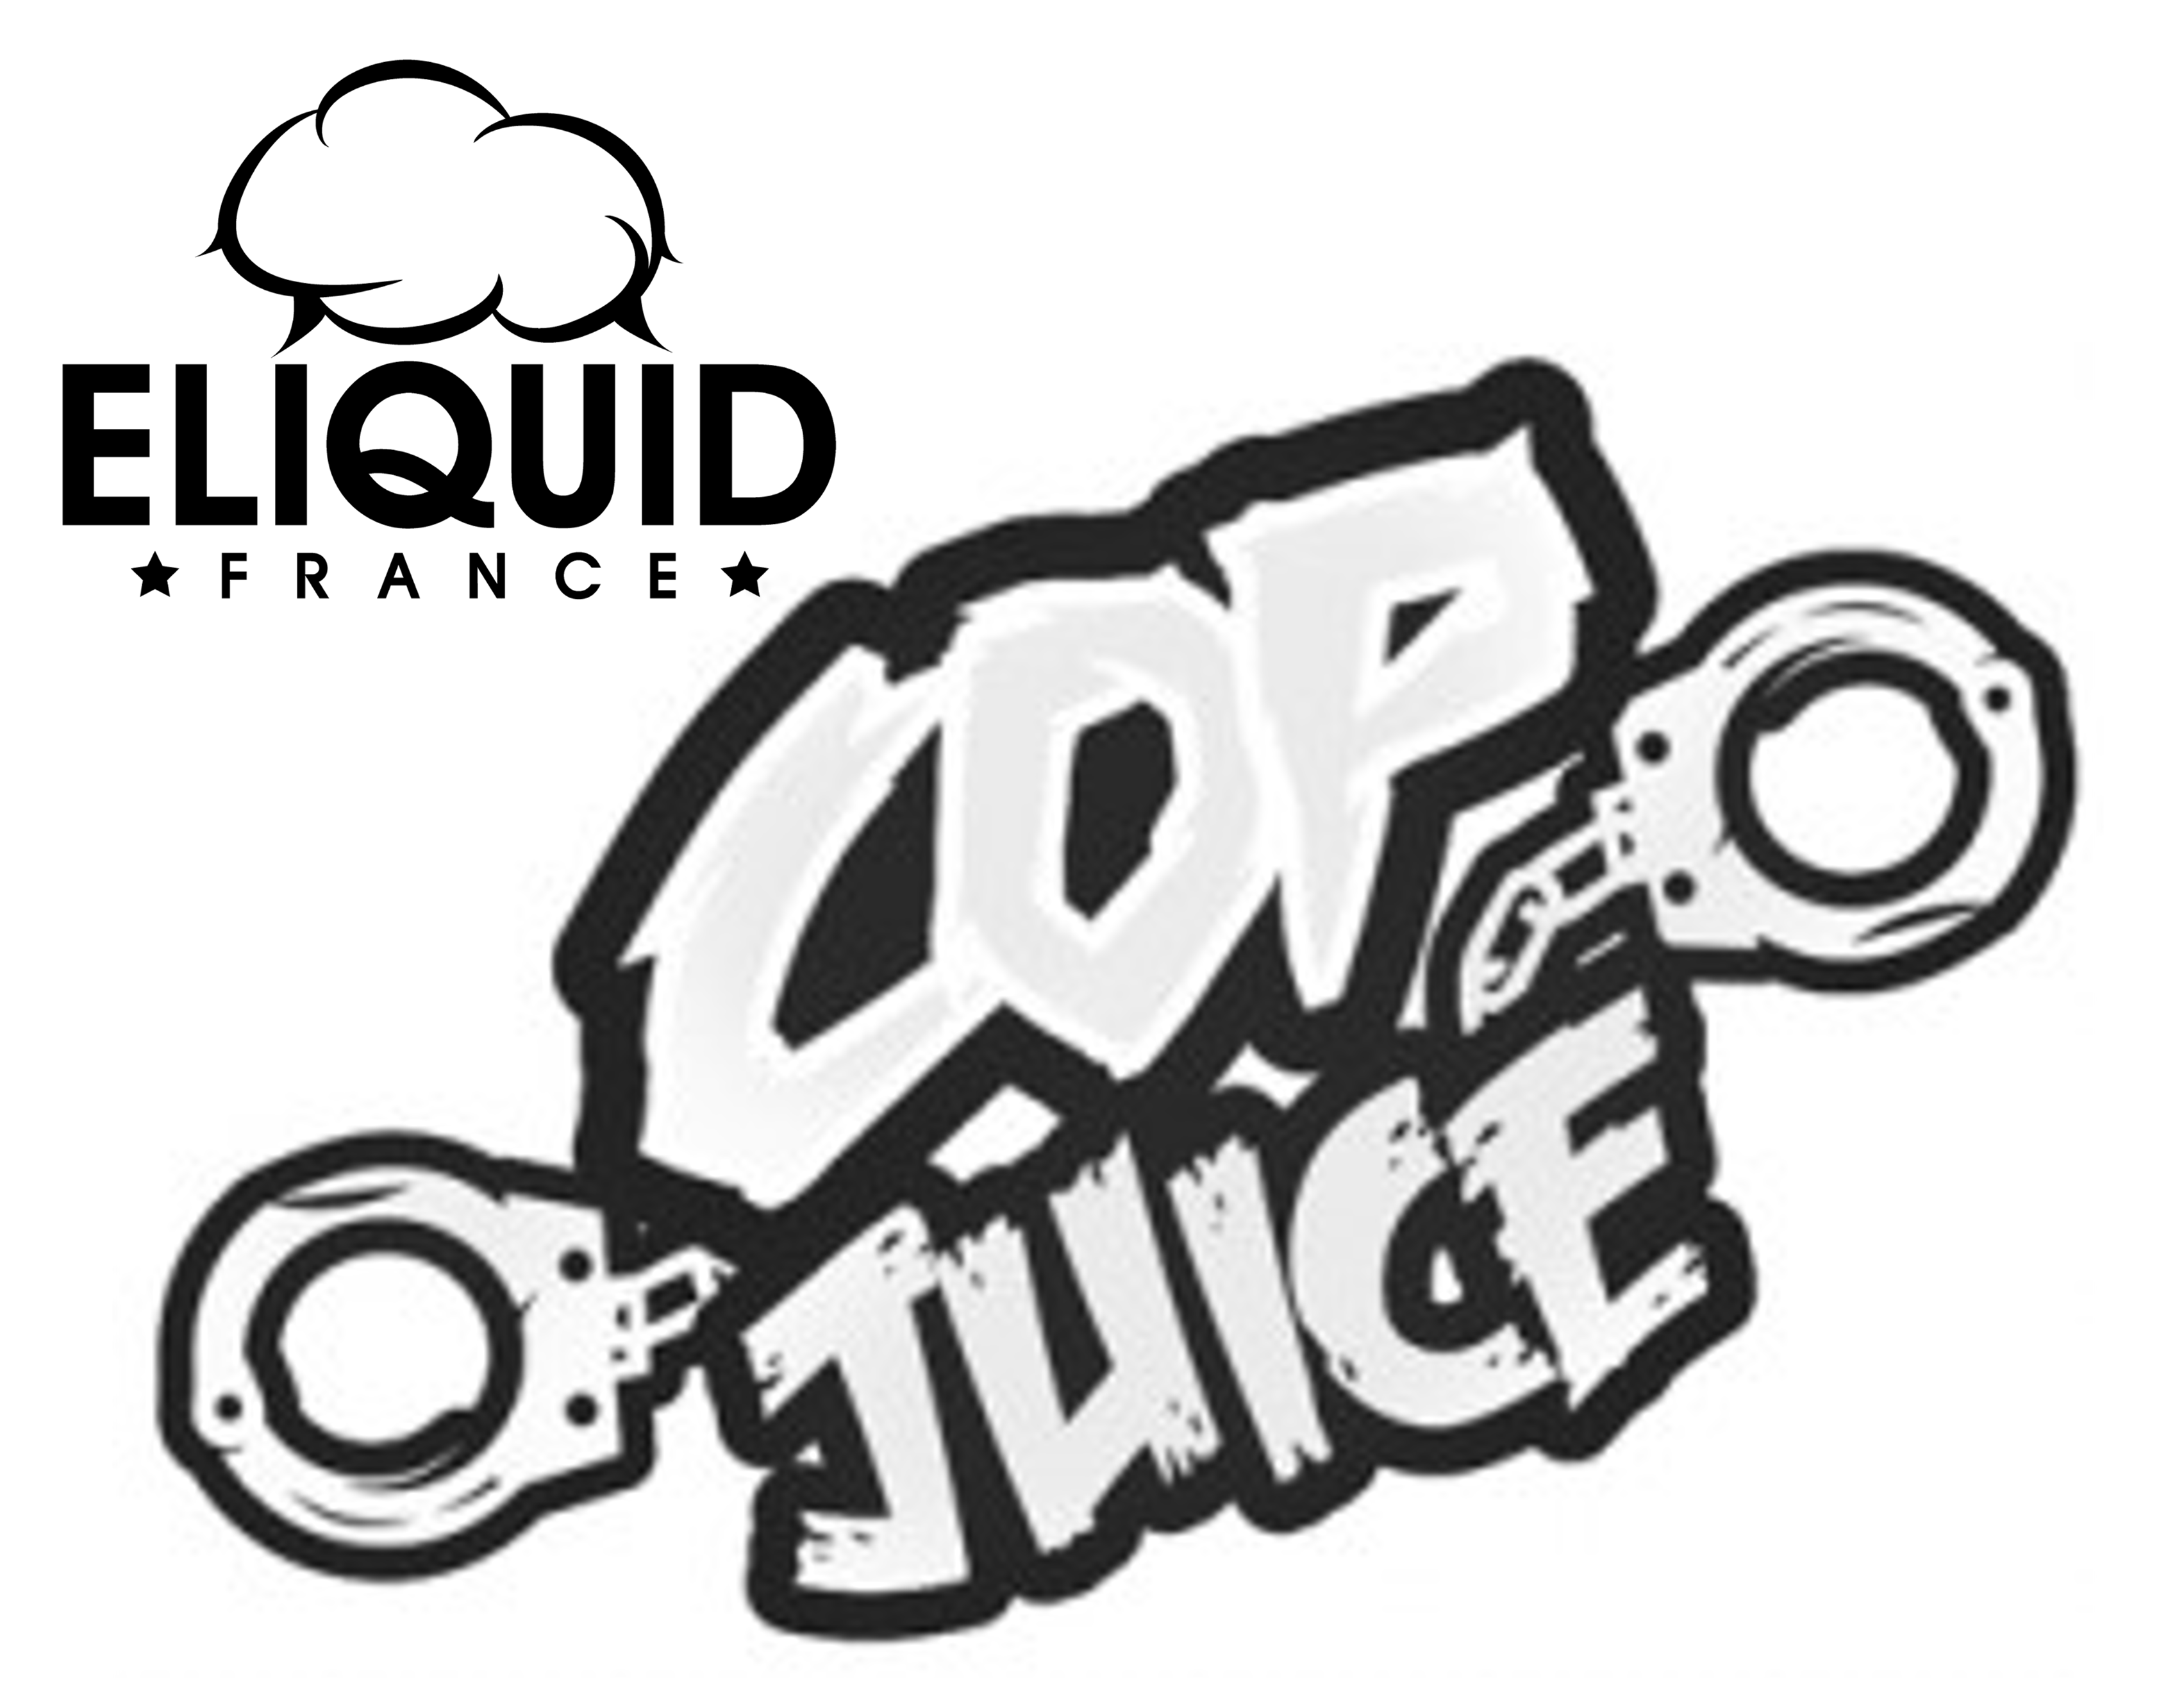 Eliquid France - Cop Juice